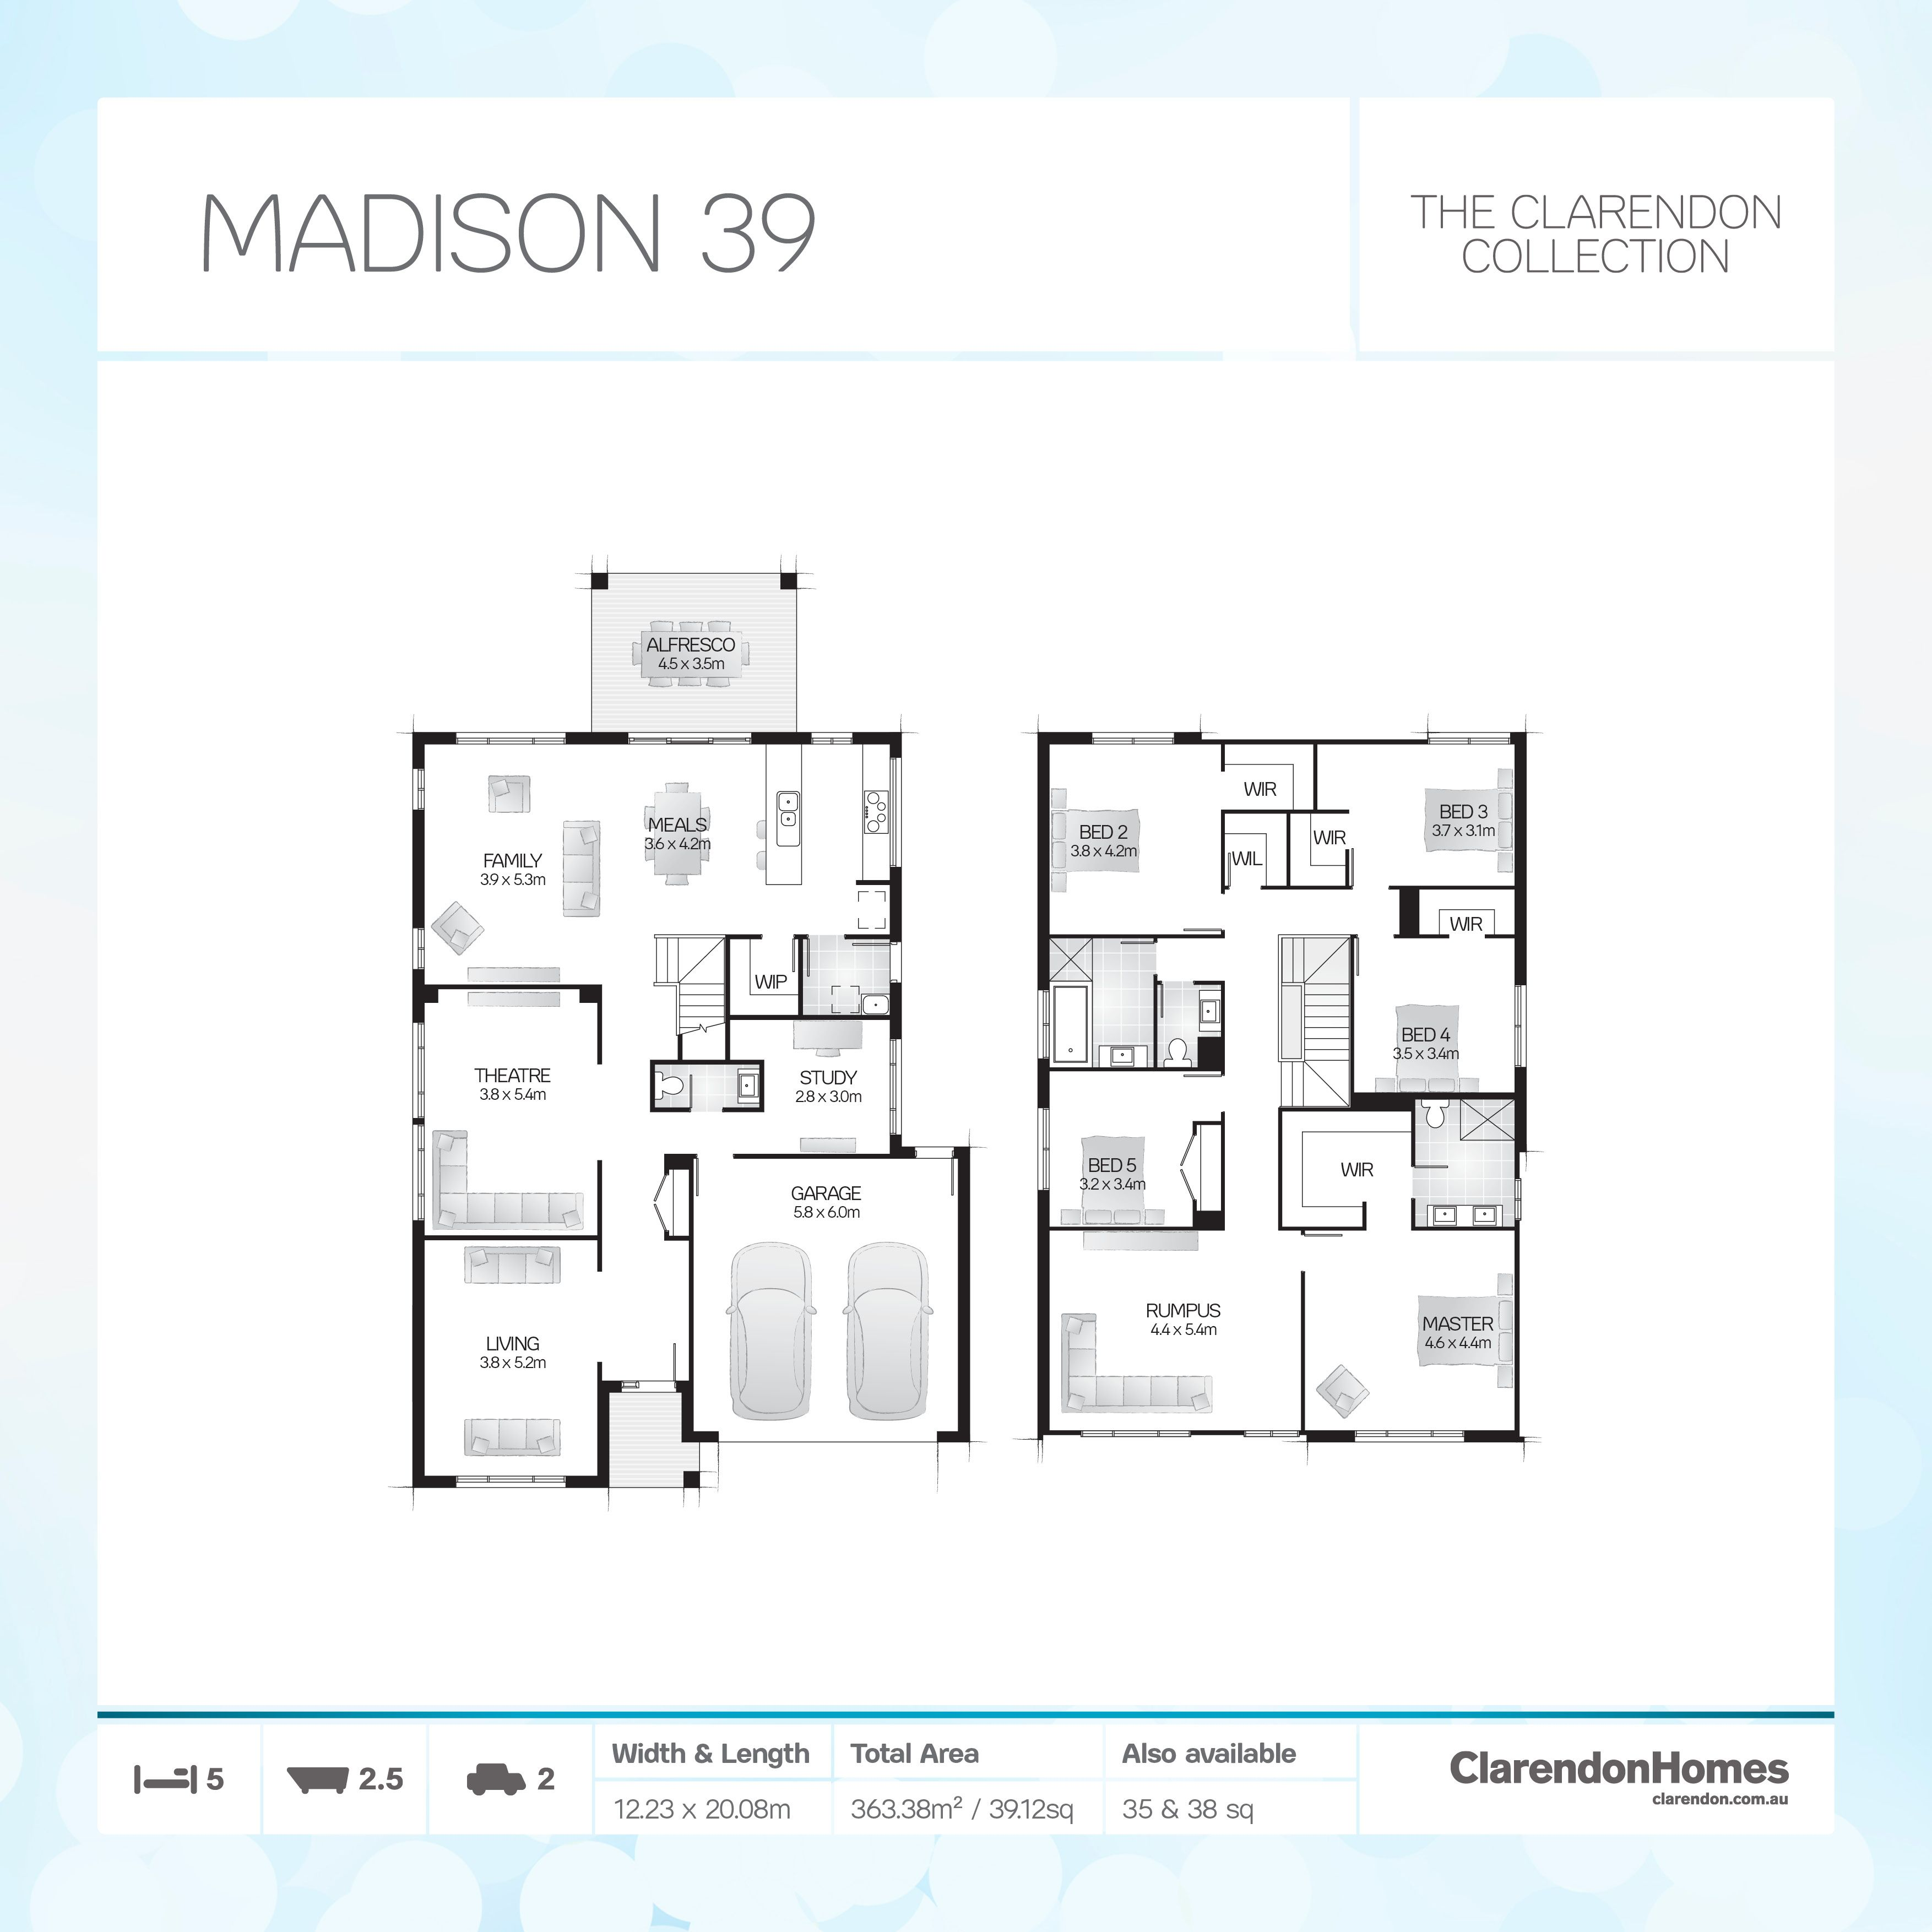 Madison 39. A Showcase Of Exquisite Style. Clarendon HomesHome Design